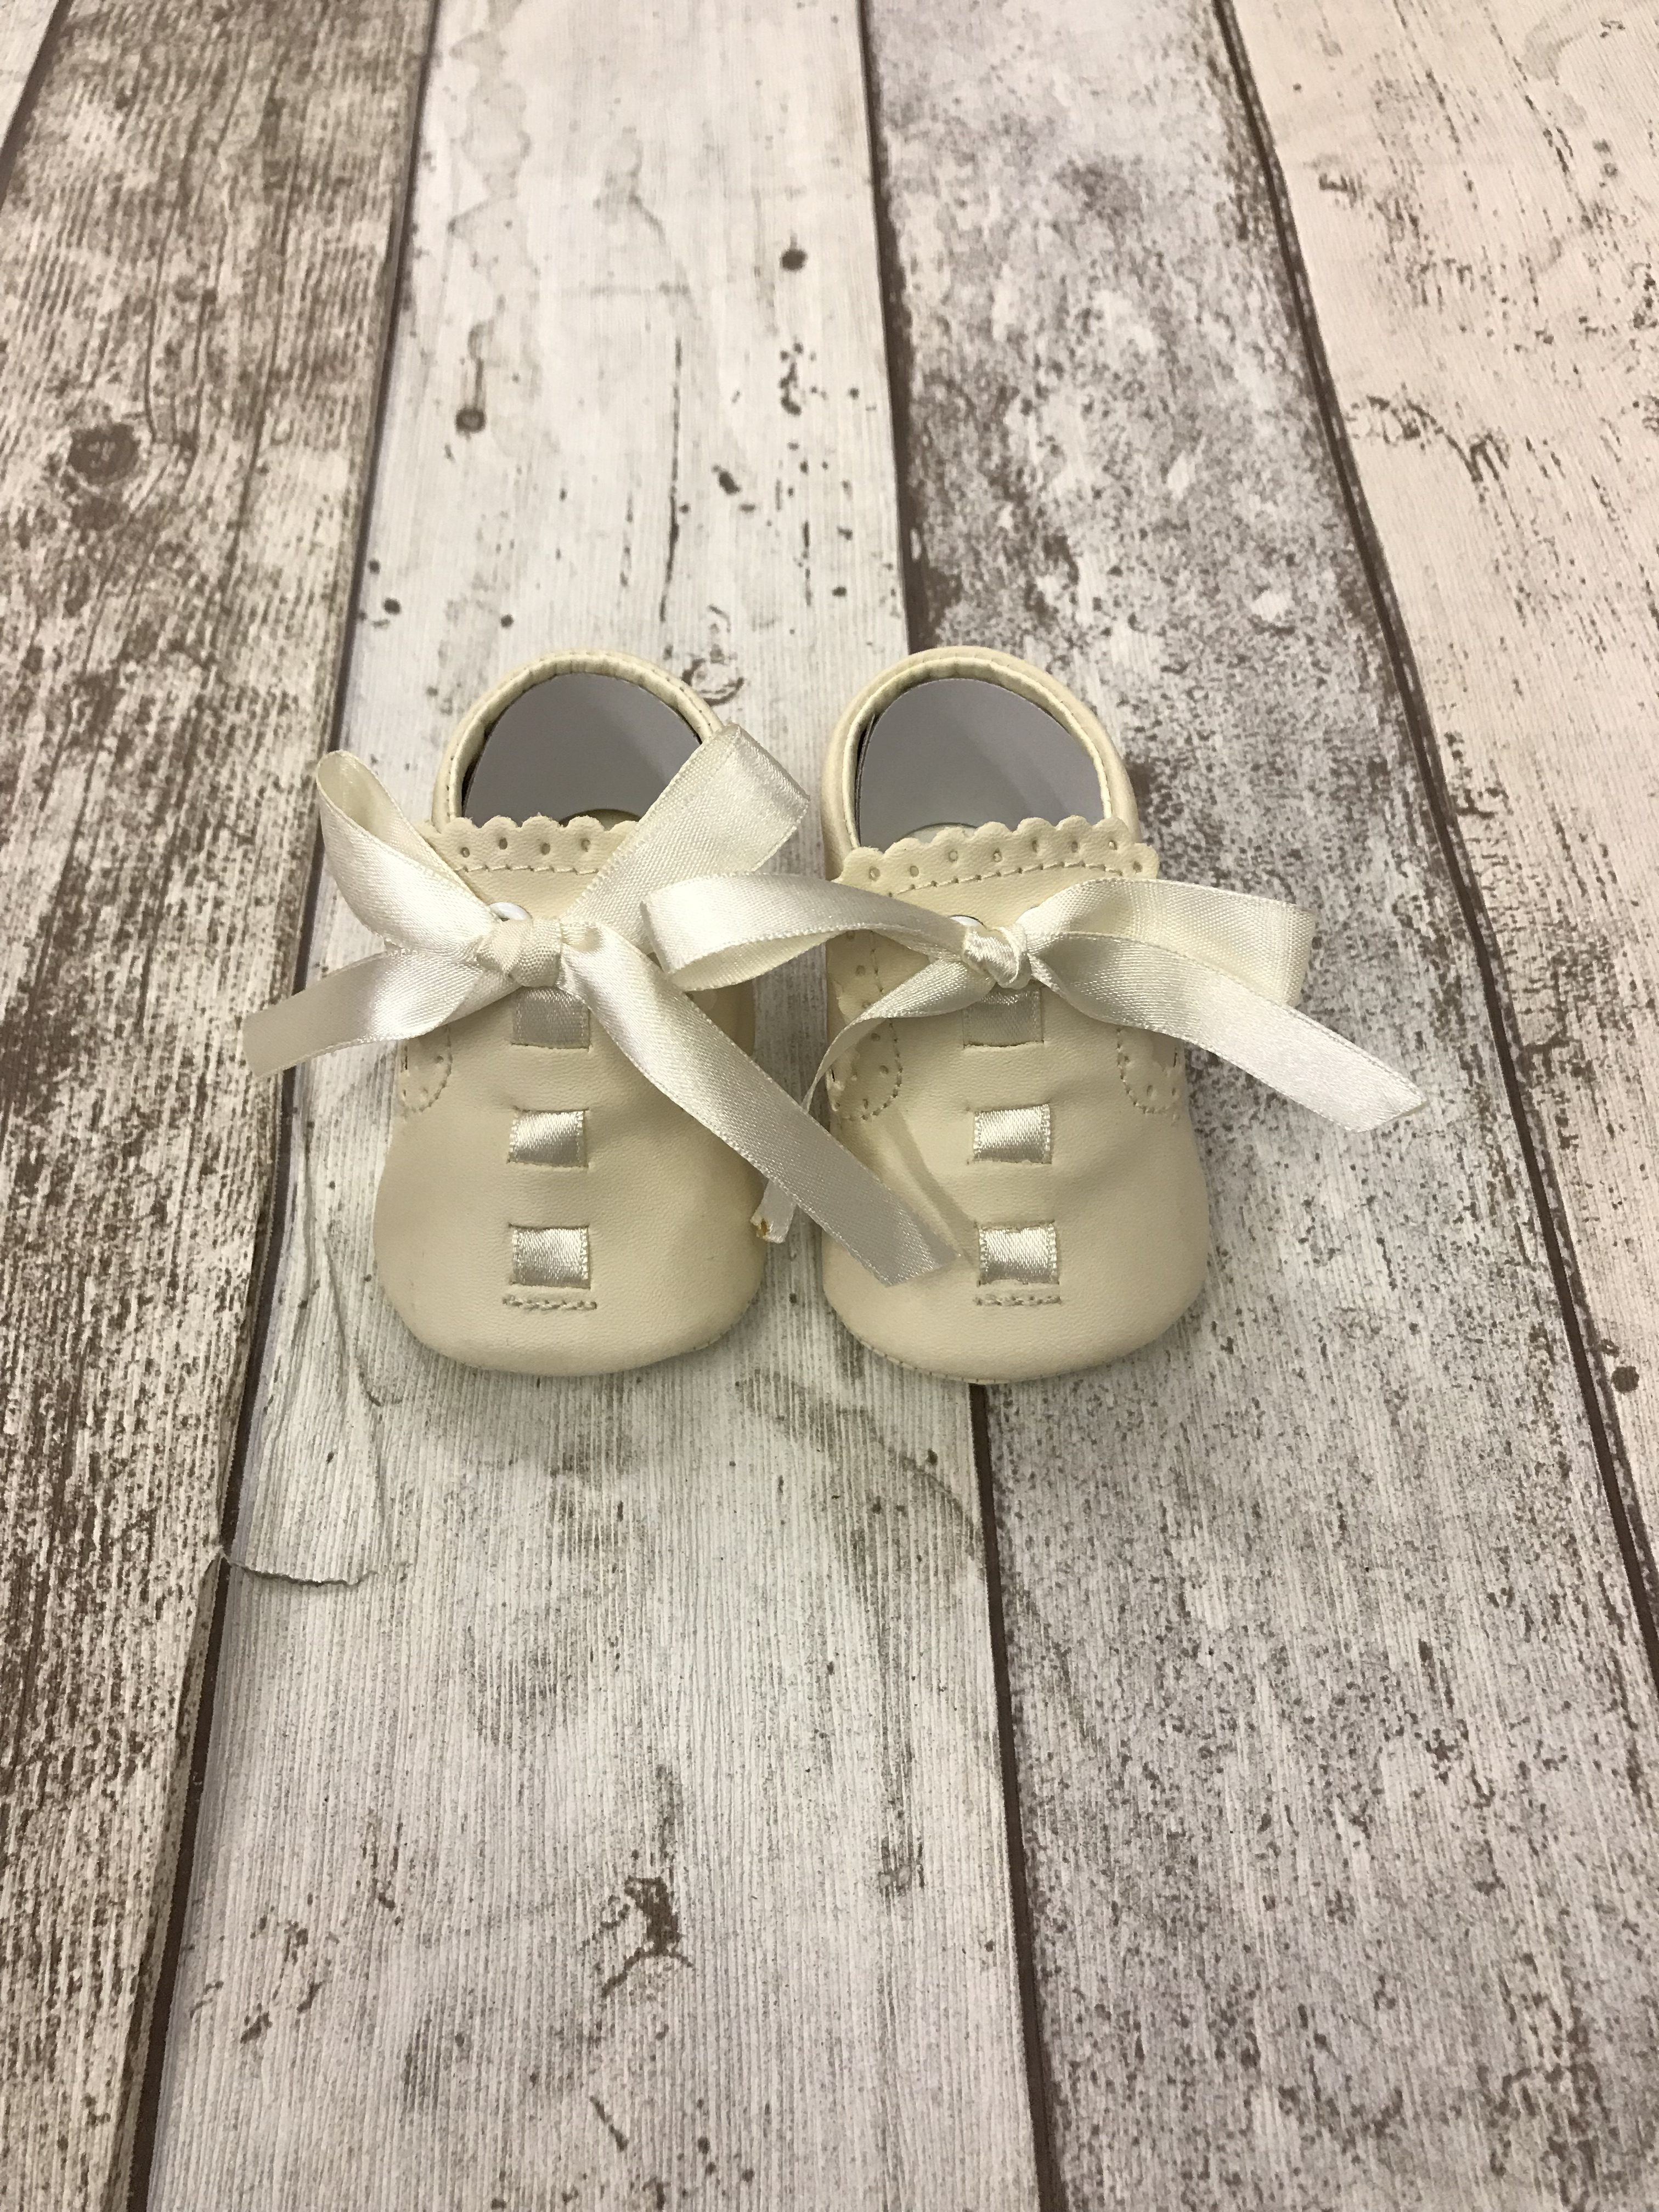 9bed0d228 Sevva 'Elliot' Shoe - Storky Baby and Childrenswear